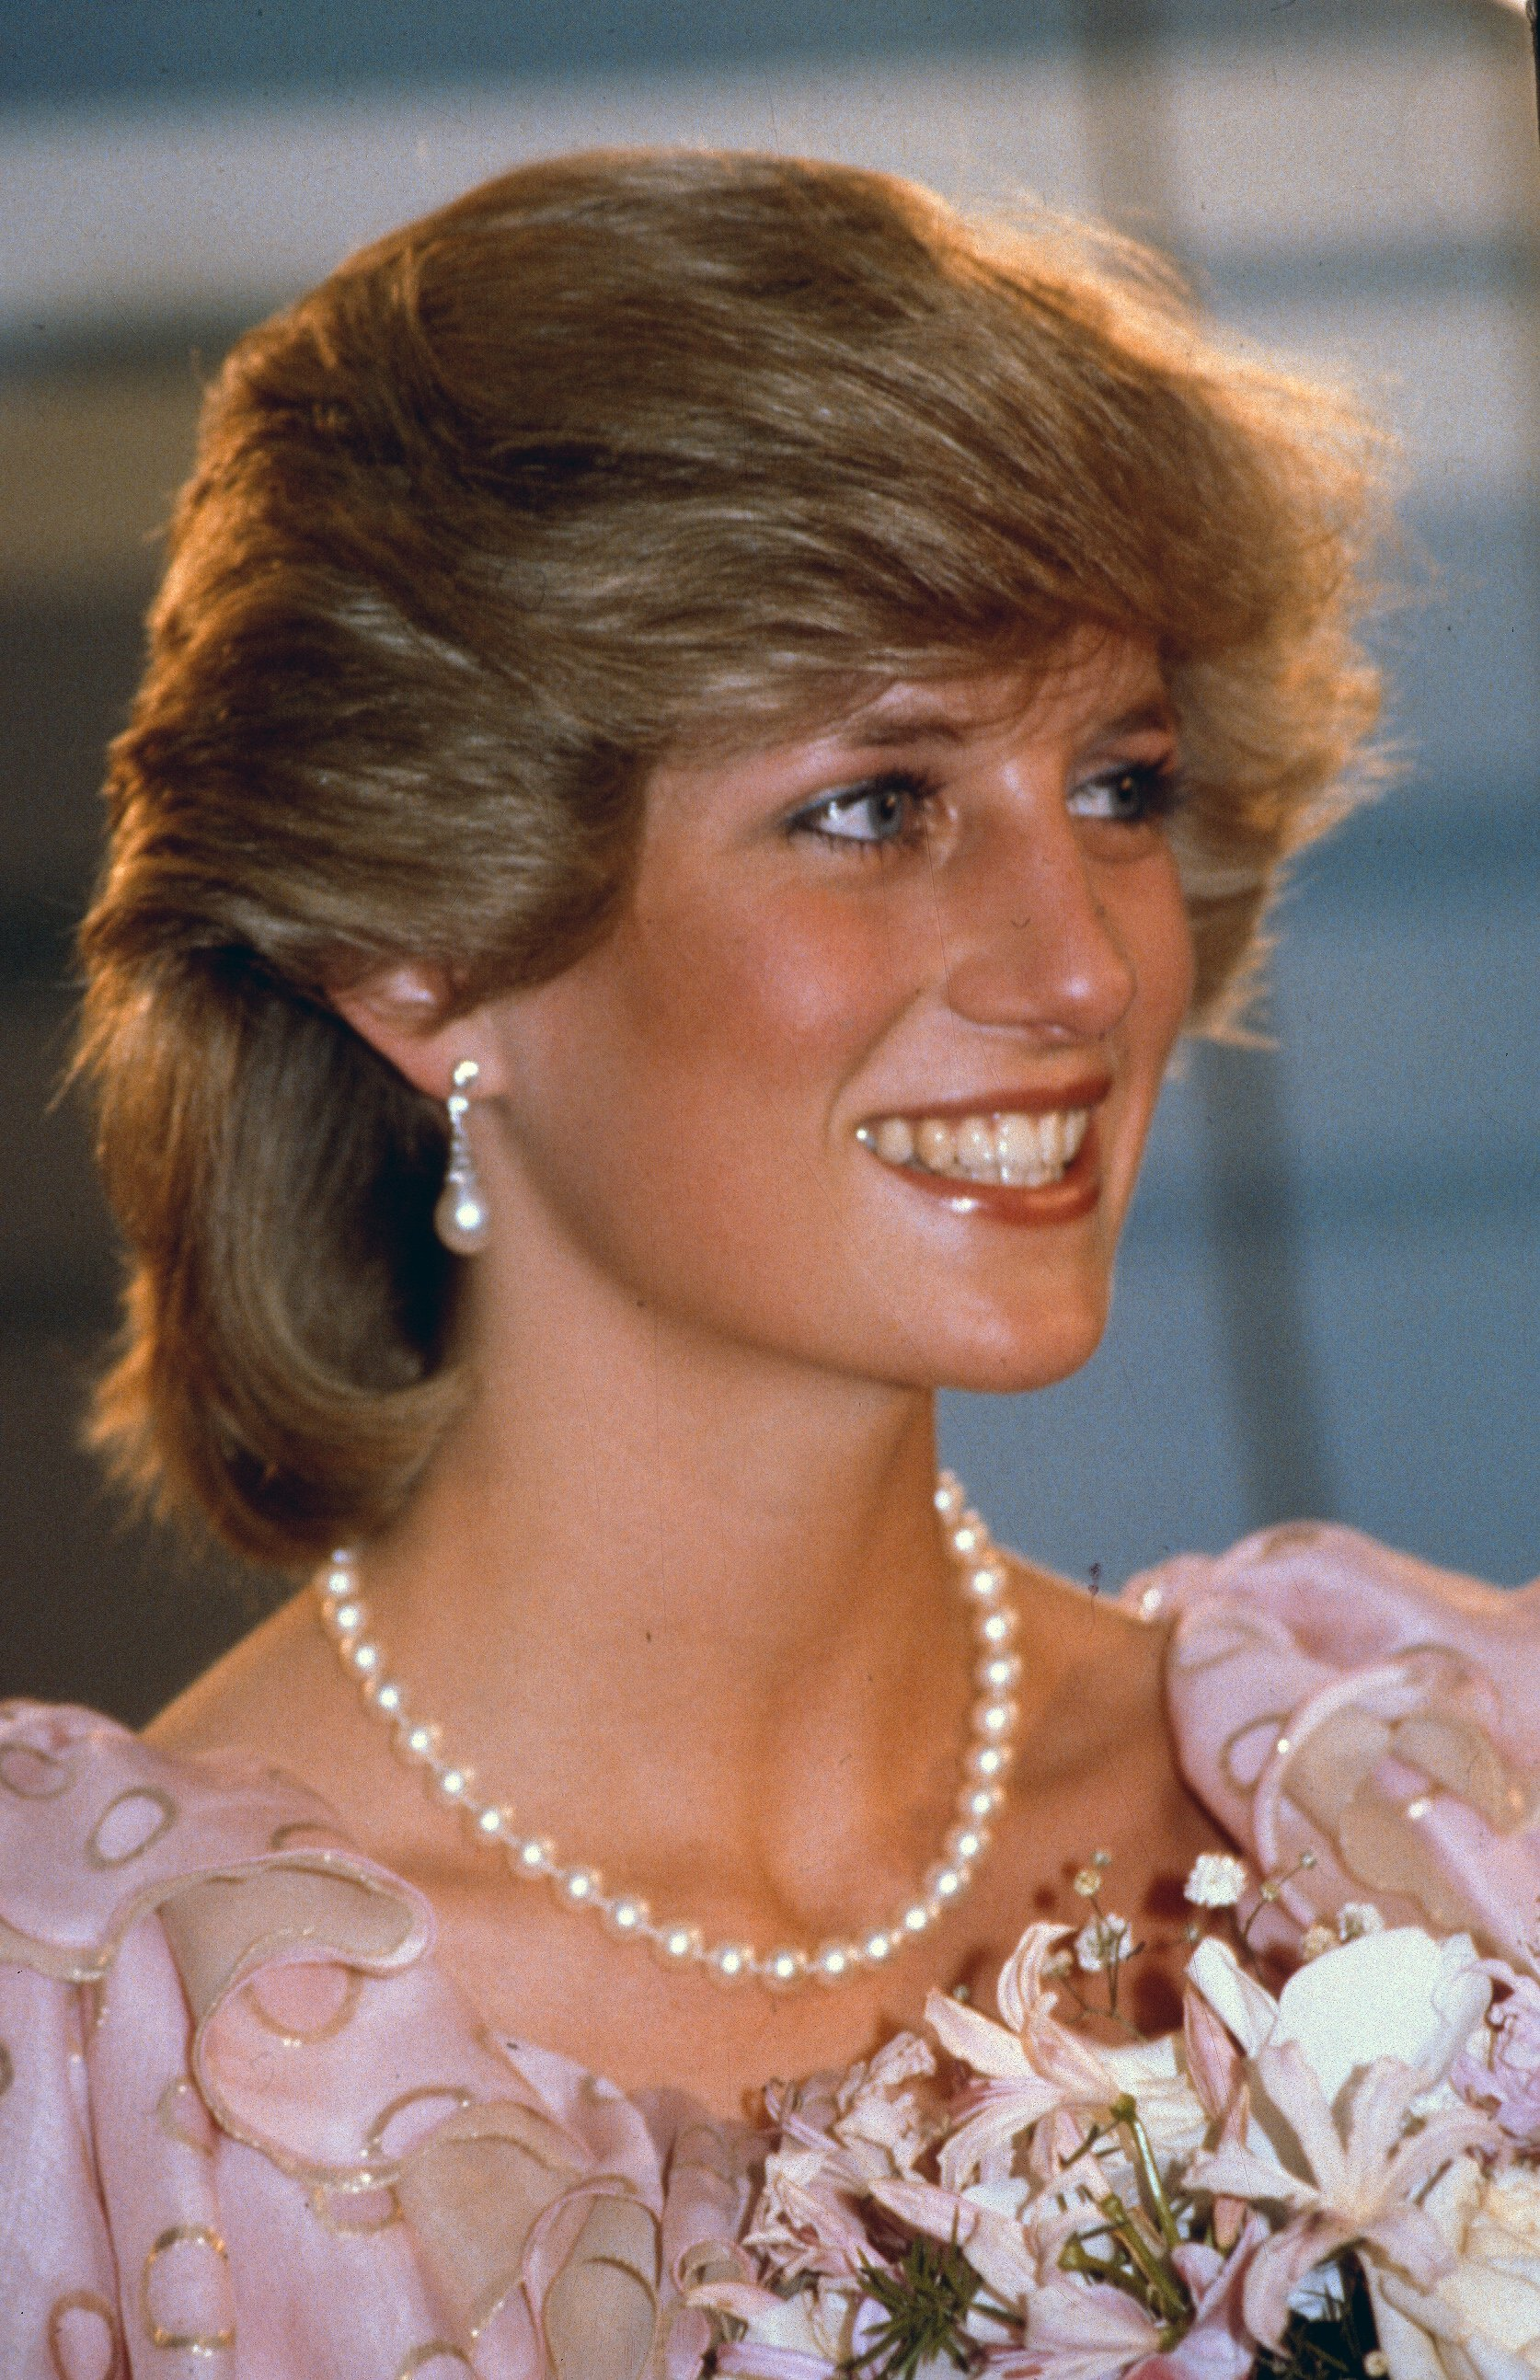 Image Credits: Getty Images | Princess Diana Shocked The World With Her Taste For The Arts